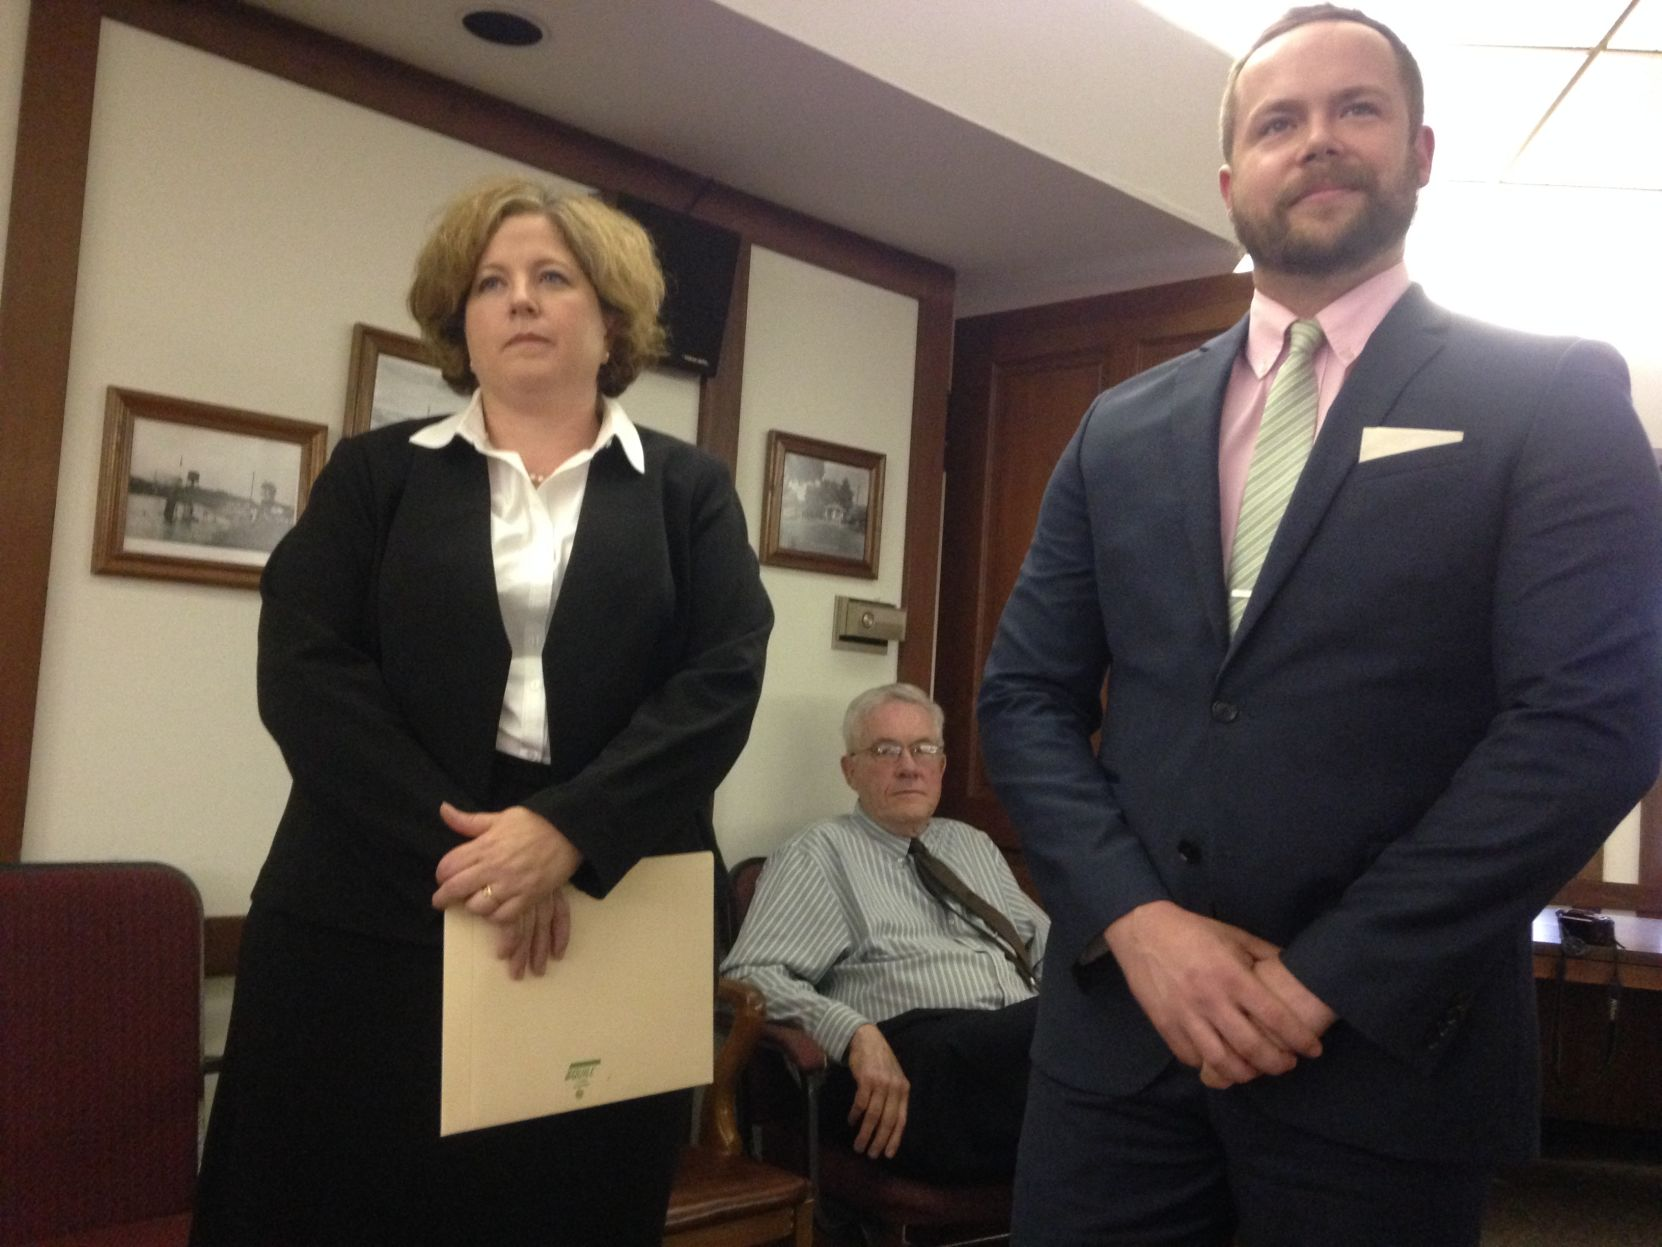 Voracek nominated as new Marshall County attorney